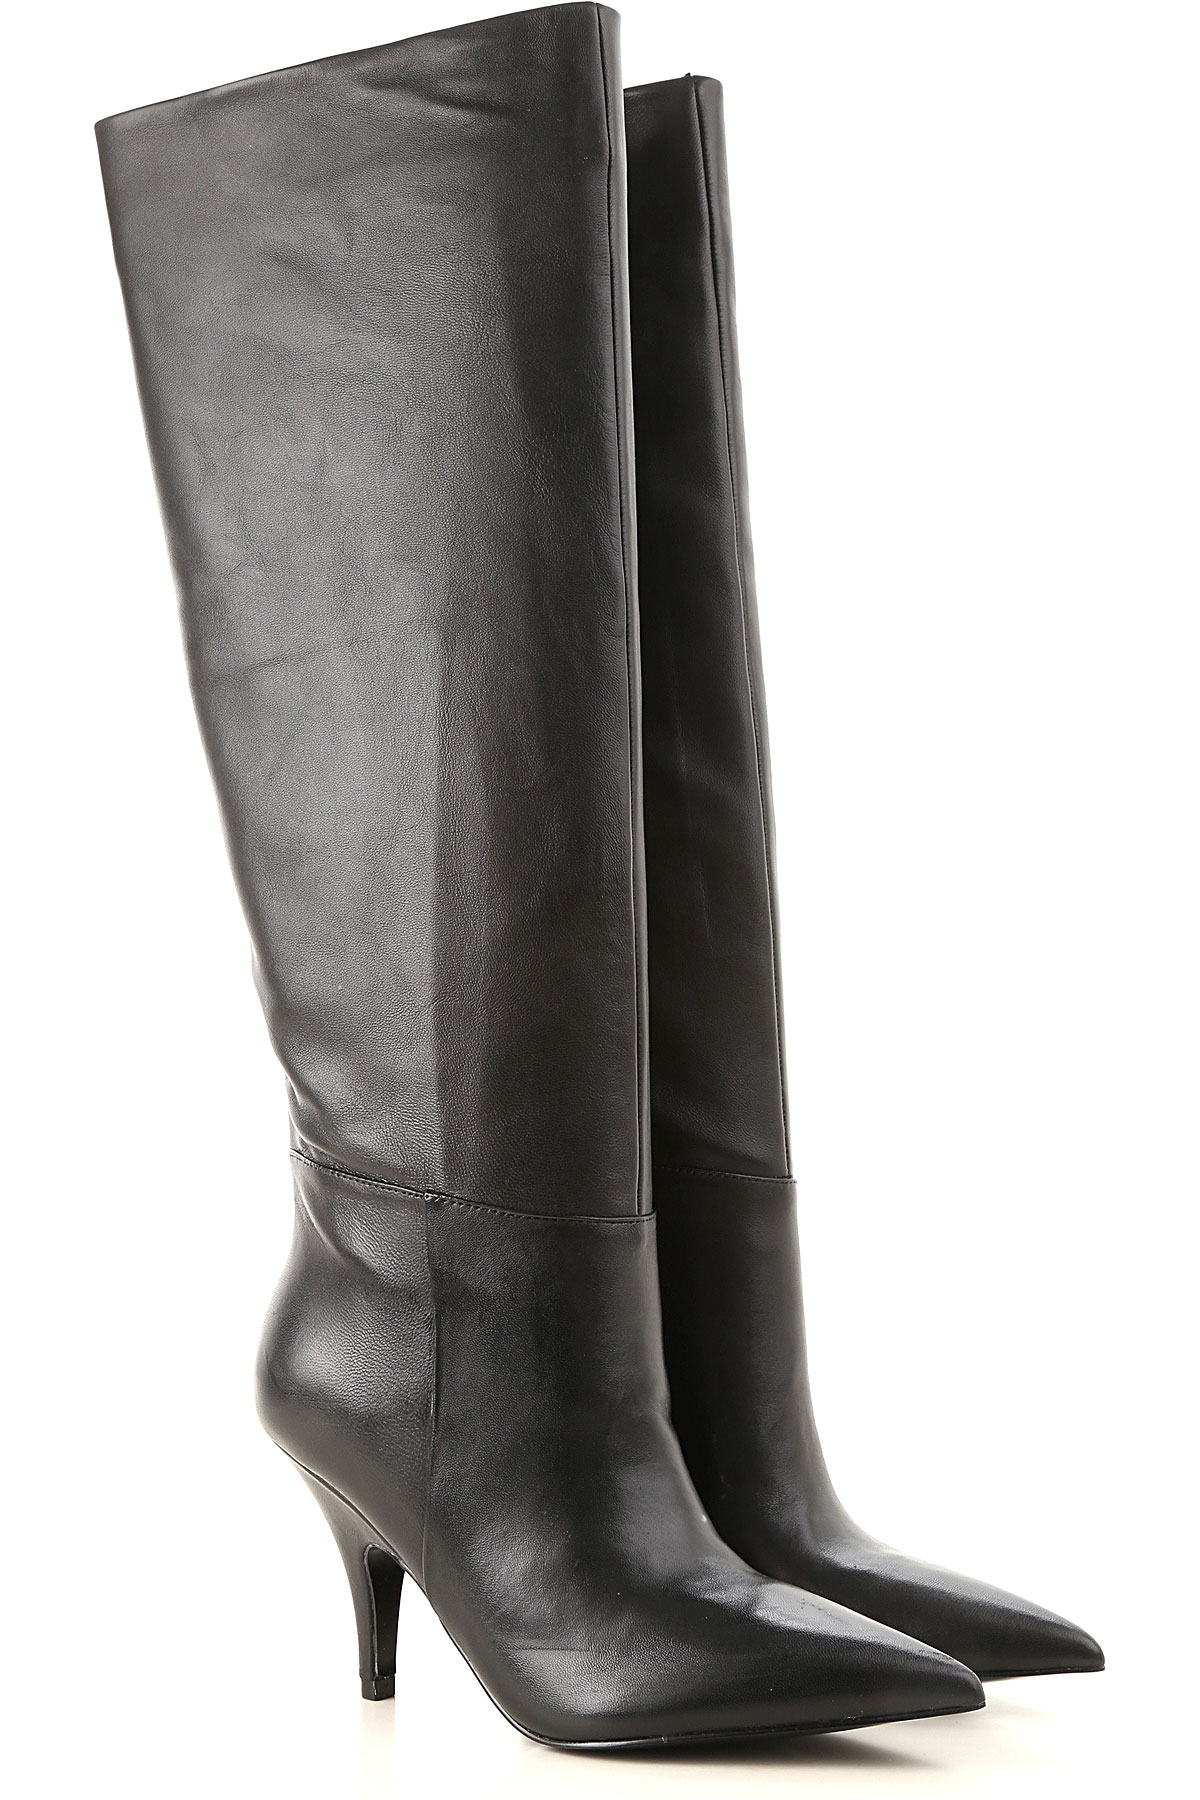 Kendall Kylie Boots For Women, Booties On Sale In Outlet, Black, Leather, 2021, 4.5